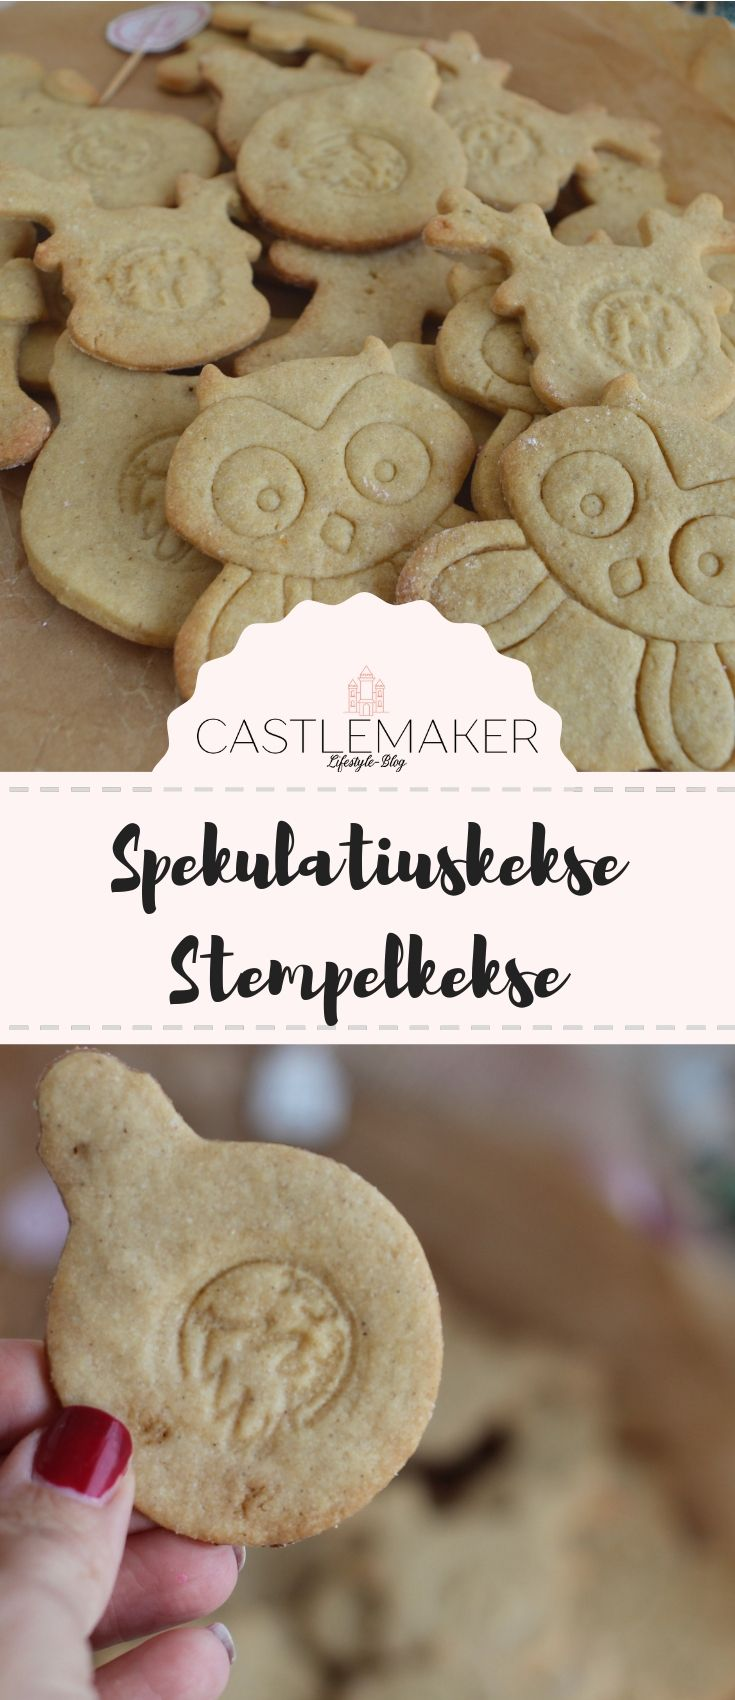 Photo of RECIPE for speculum cookies – also suitable as stamp cookies